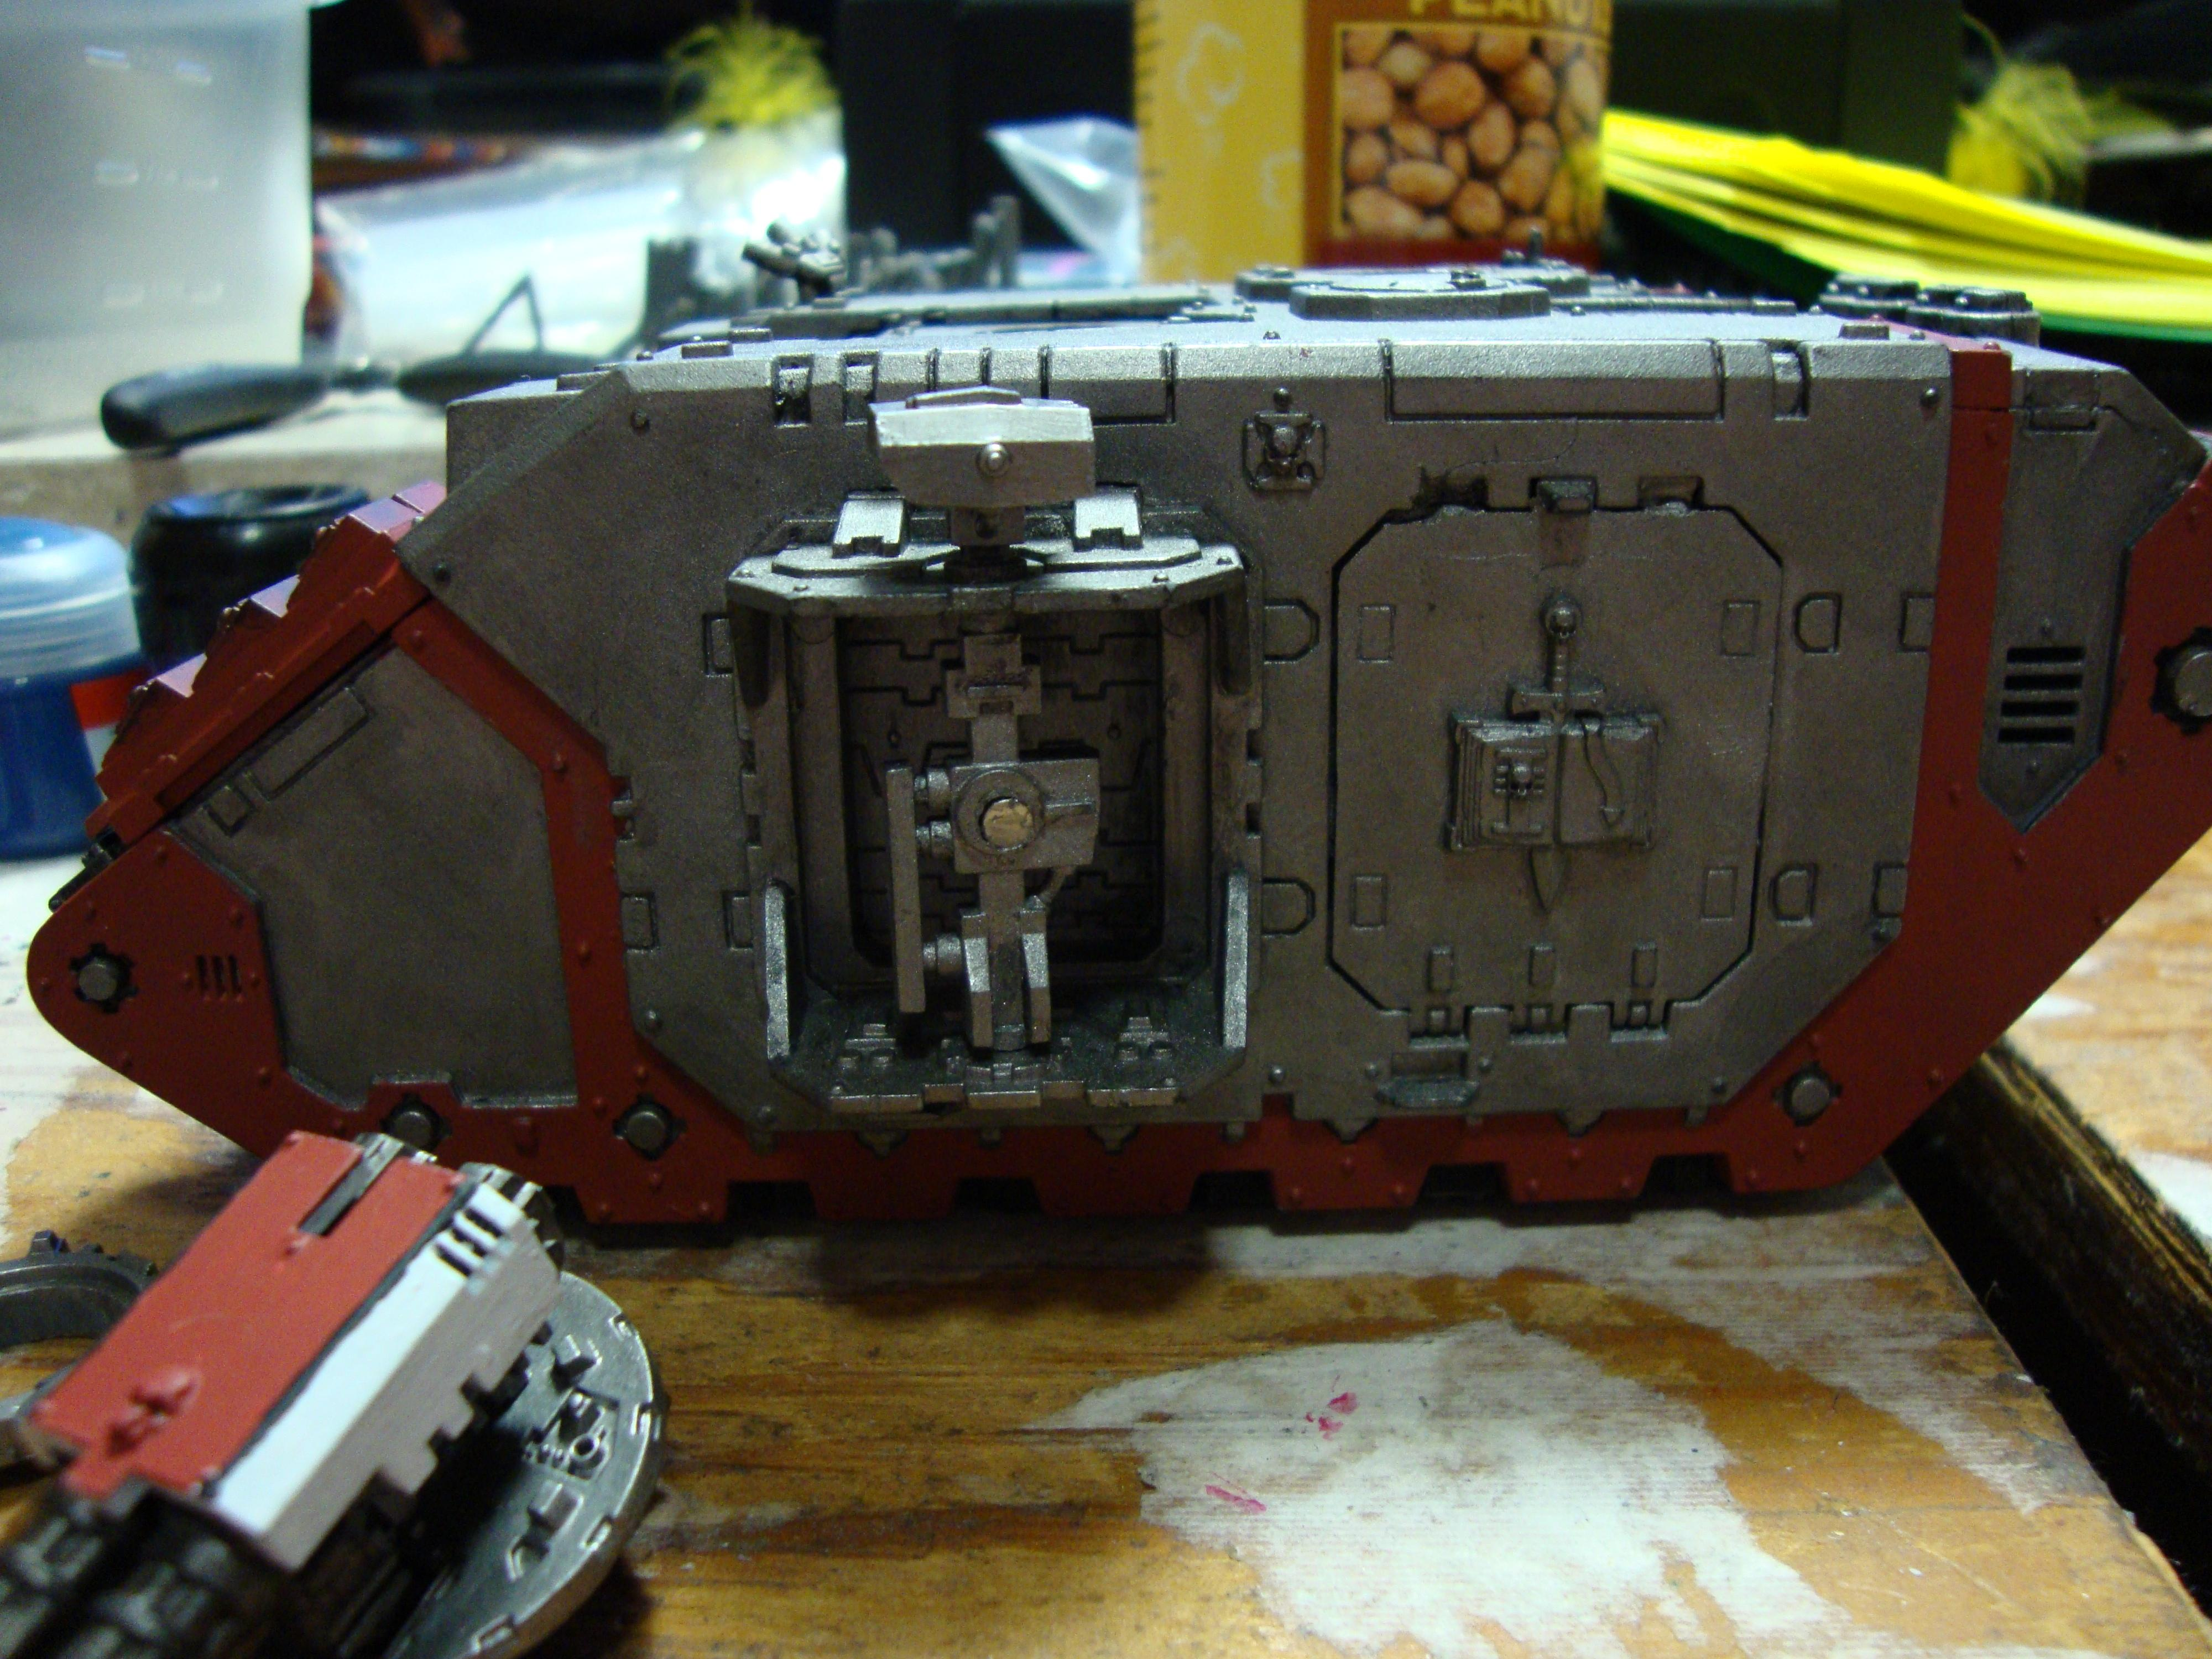 Land Raider, Standard light - flash makes the red look off